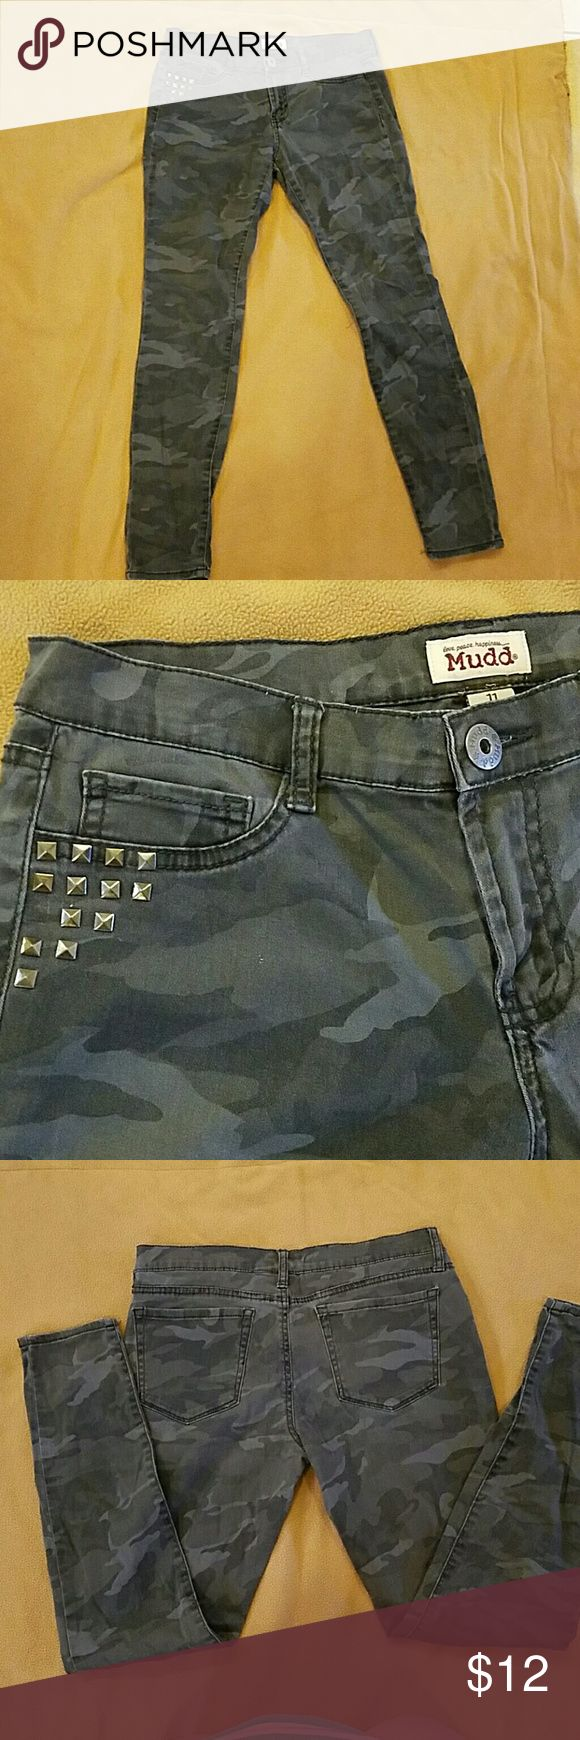 Grey camo Mudd pants size 11 Grey camo skinny pants in good used condition. Bundle up and save Mudd Pants Skinny